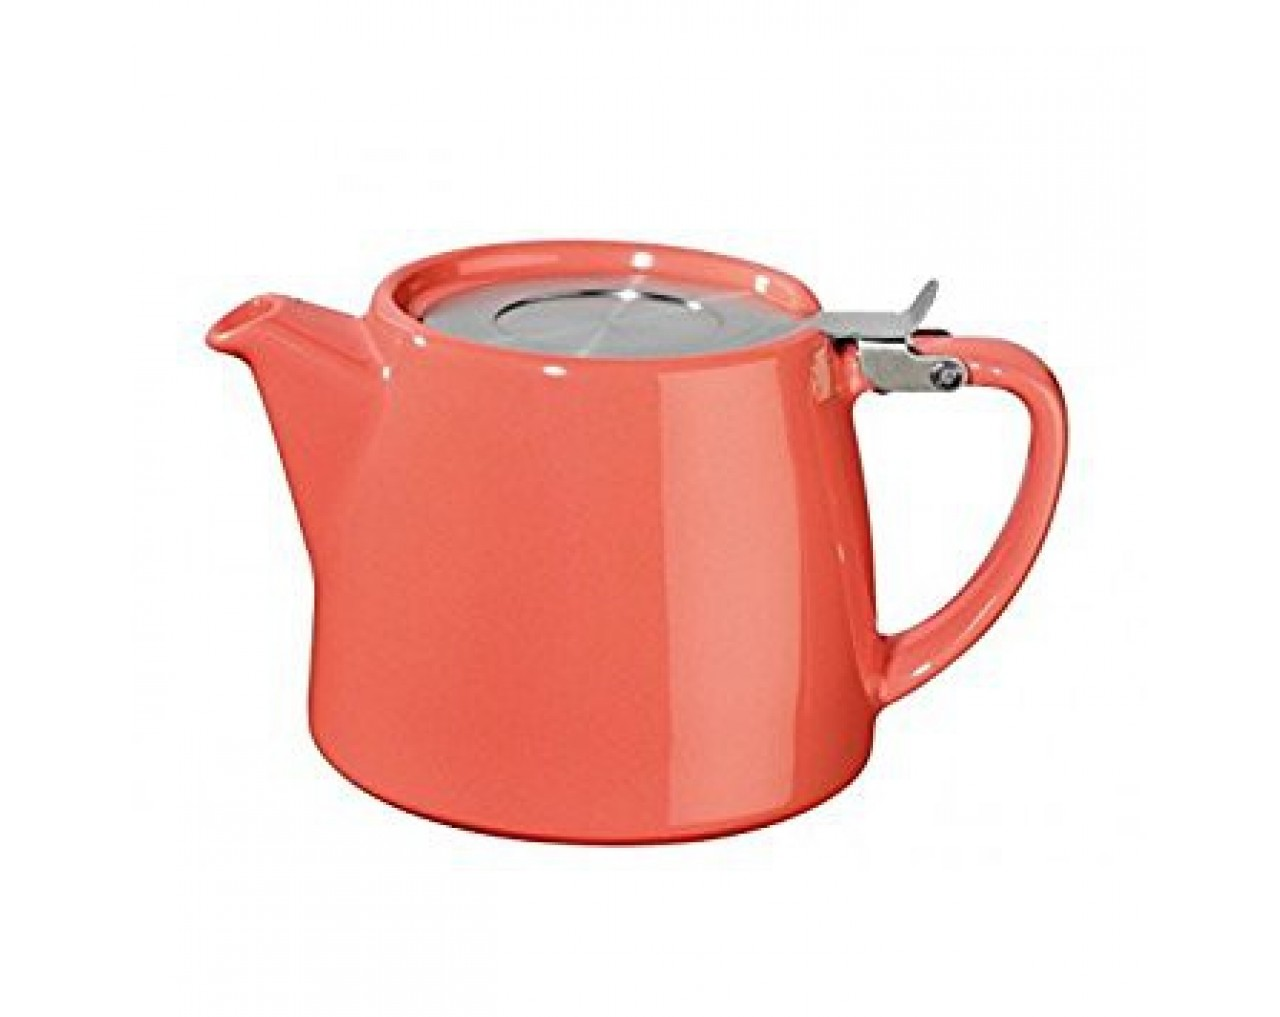 Coral Stump Teapot